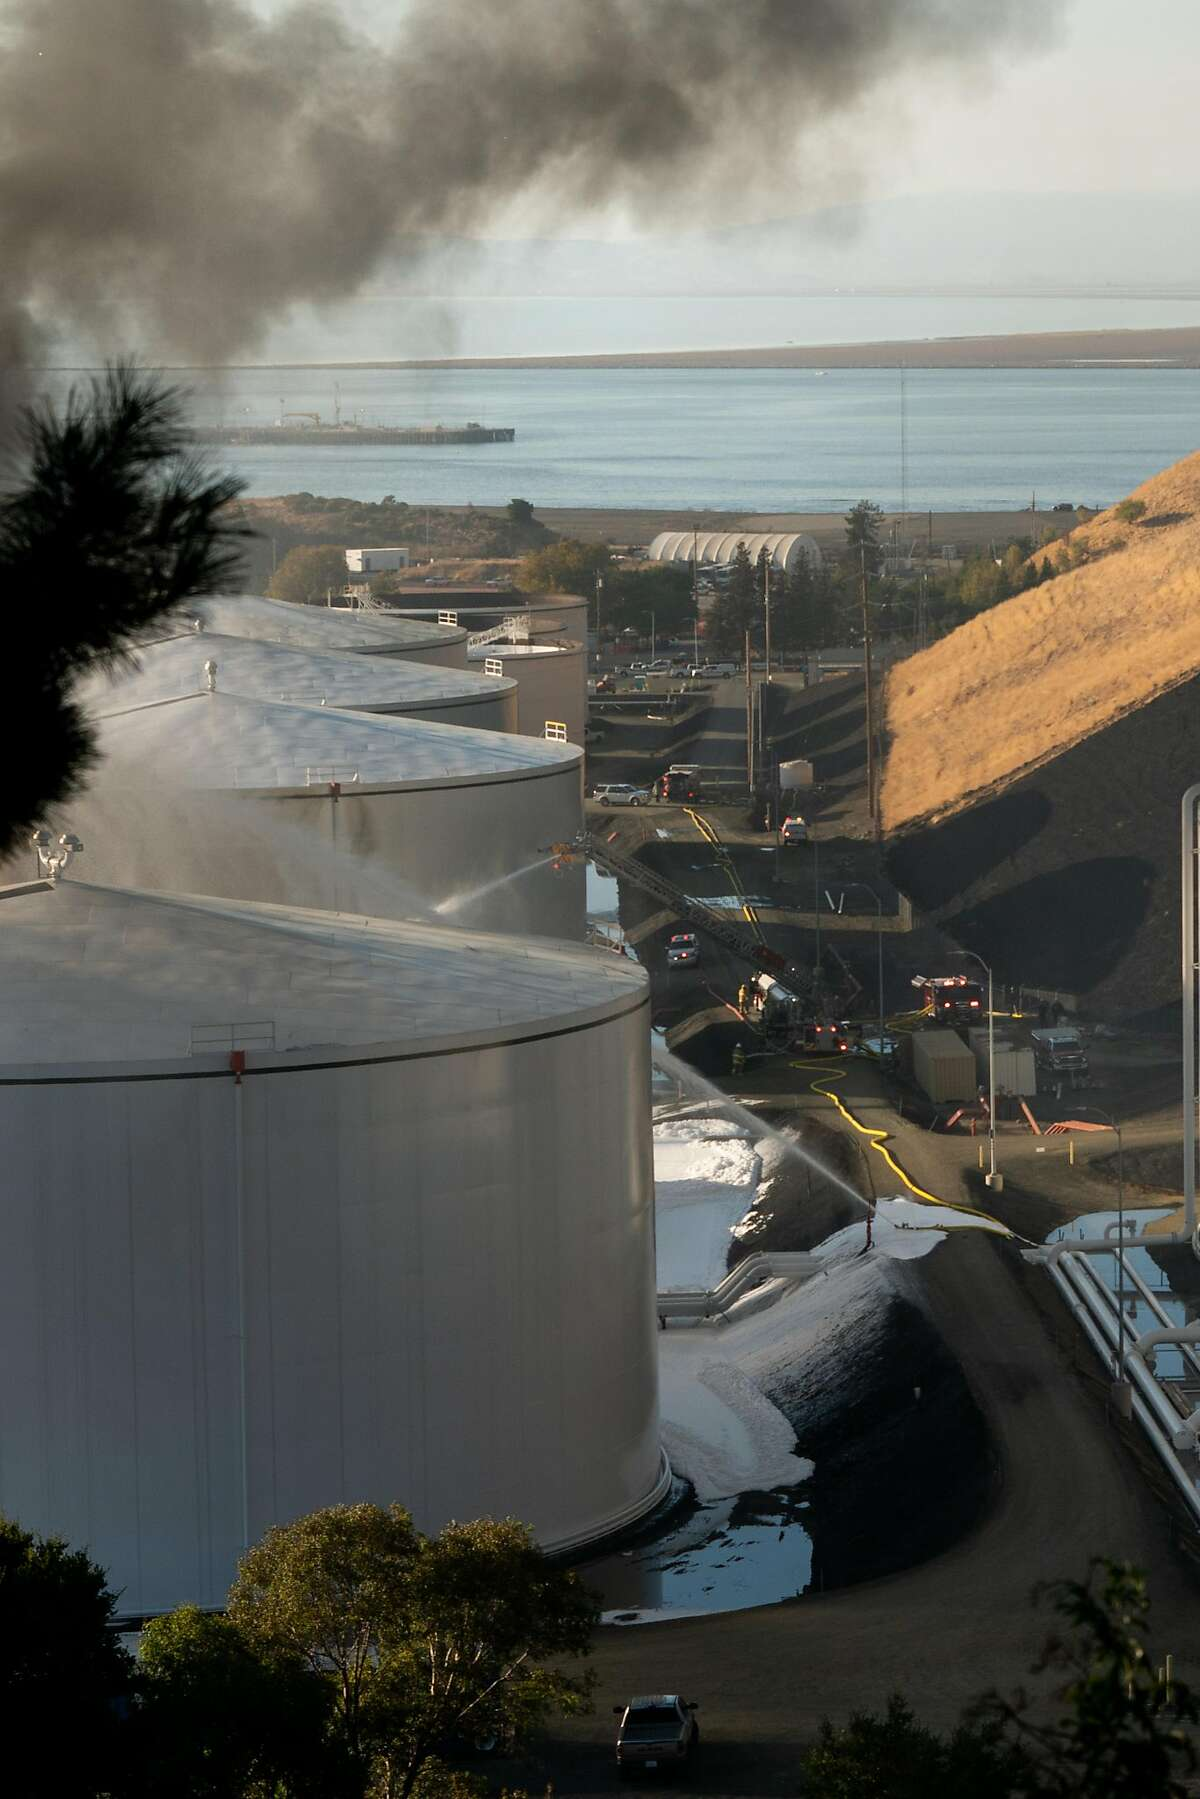 Fire crews work to extinguish flames after an explosion at NuStar energy facility in Crockett, Calif. on Tuesday, Oct. 15, 2019.